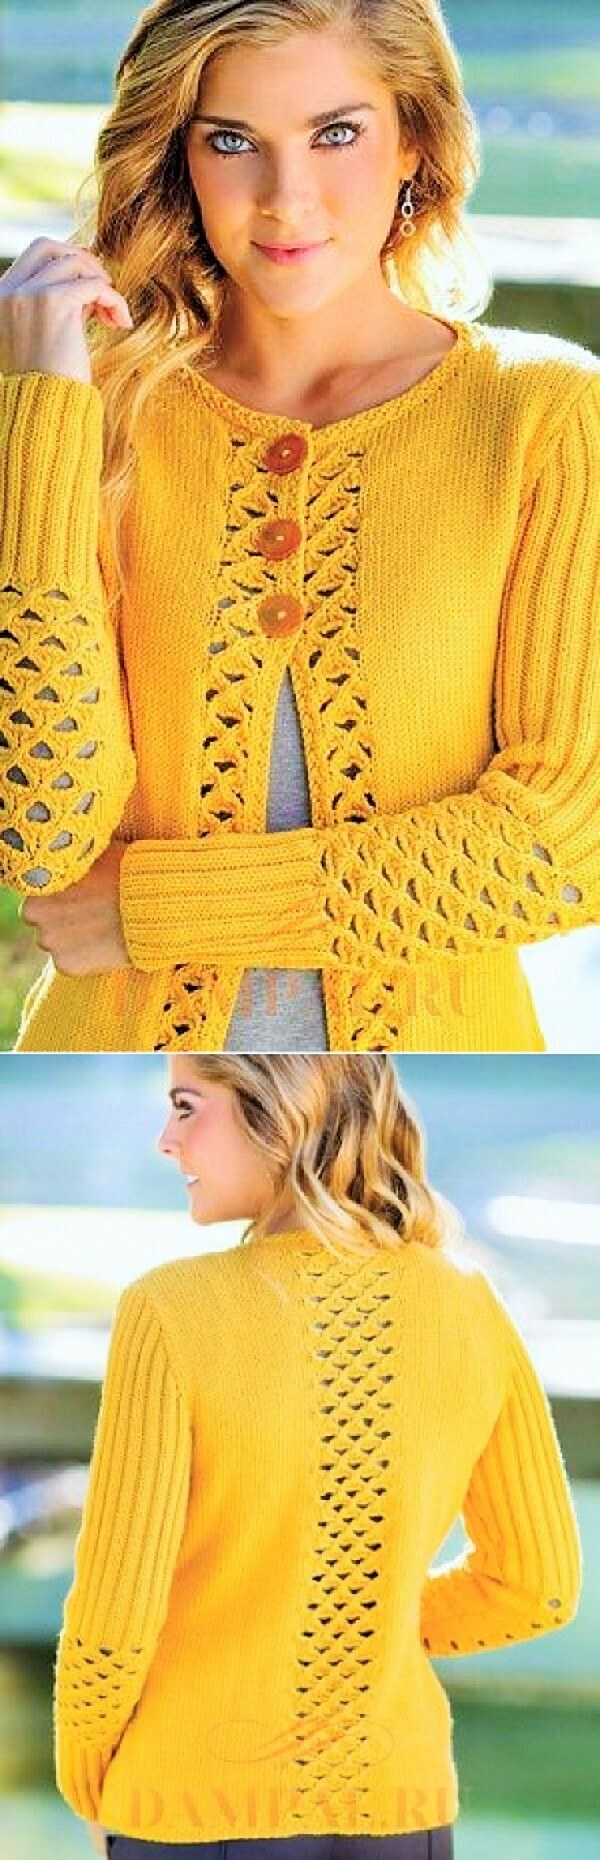 homemade with crochet Ladies Fashion Ideas -12